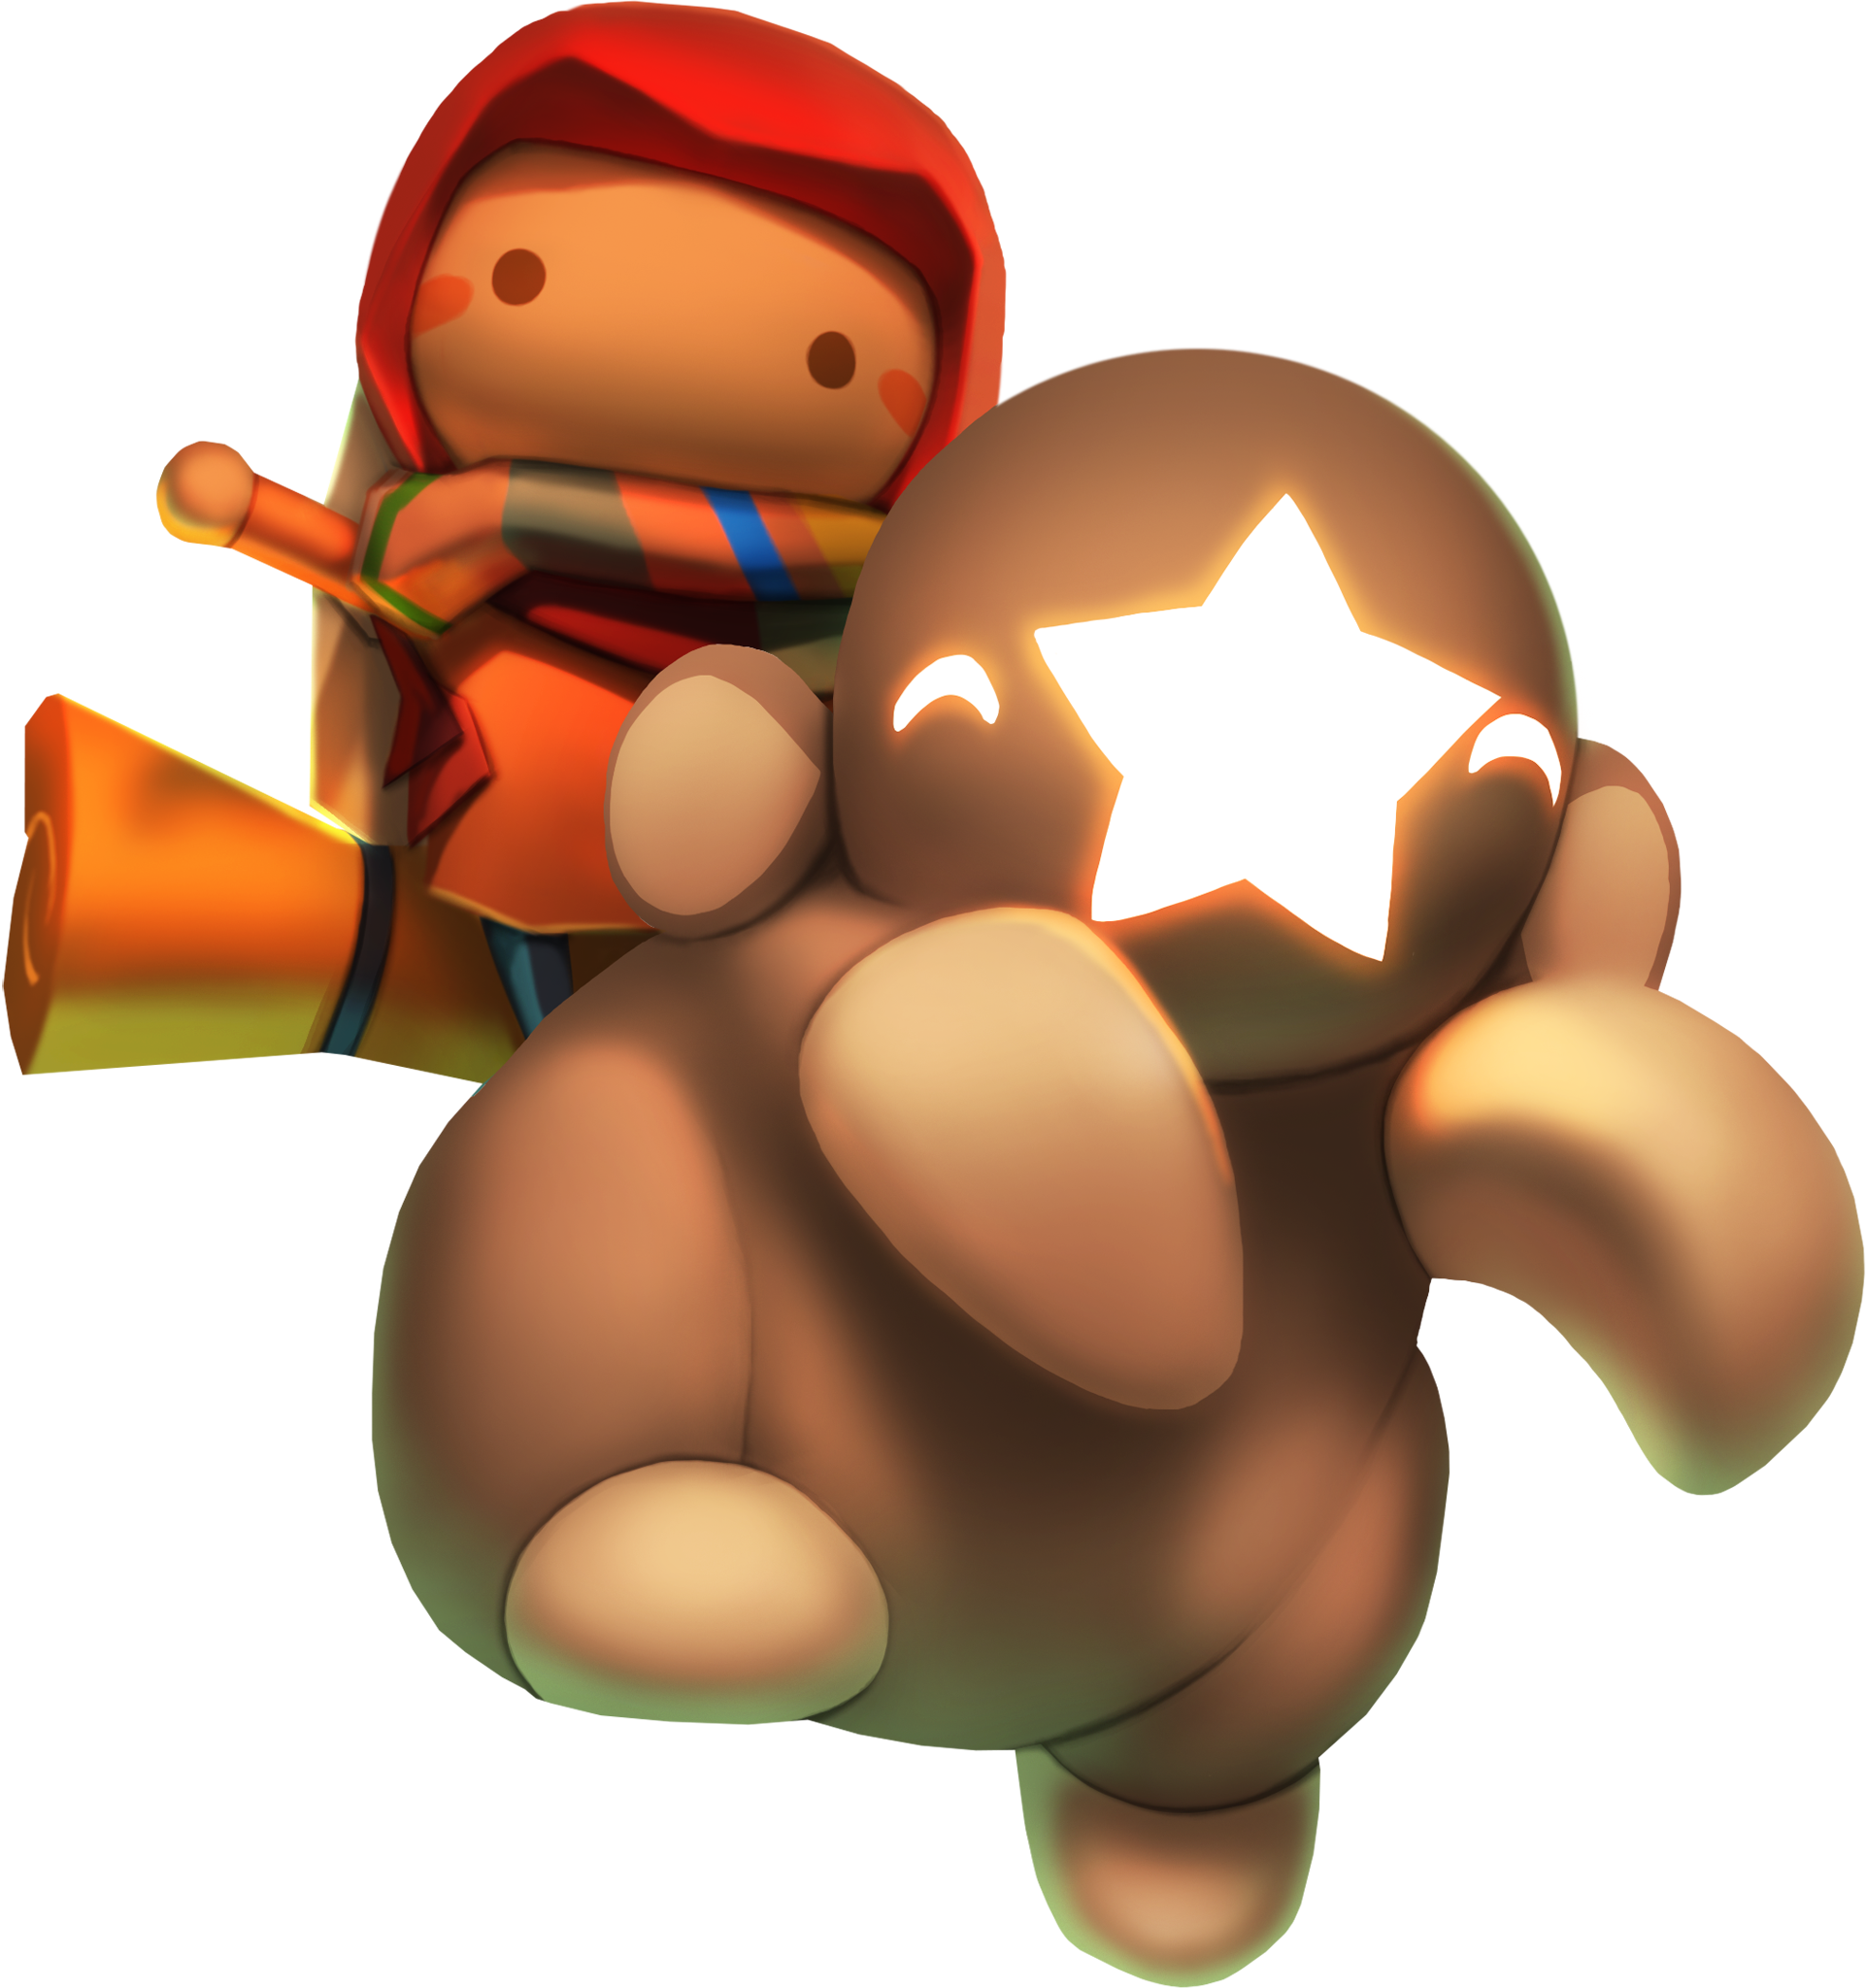 Download Starlit Character00adventure PNG Image with No Background - PNGkey.com